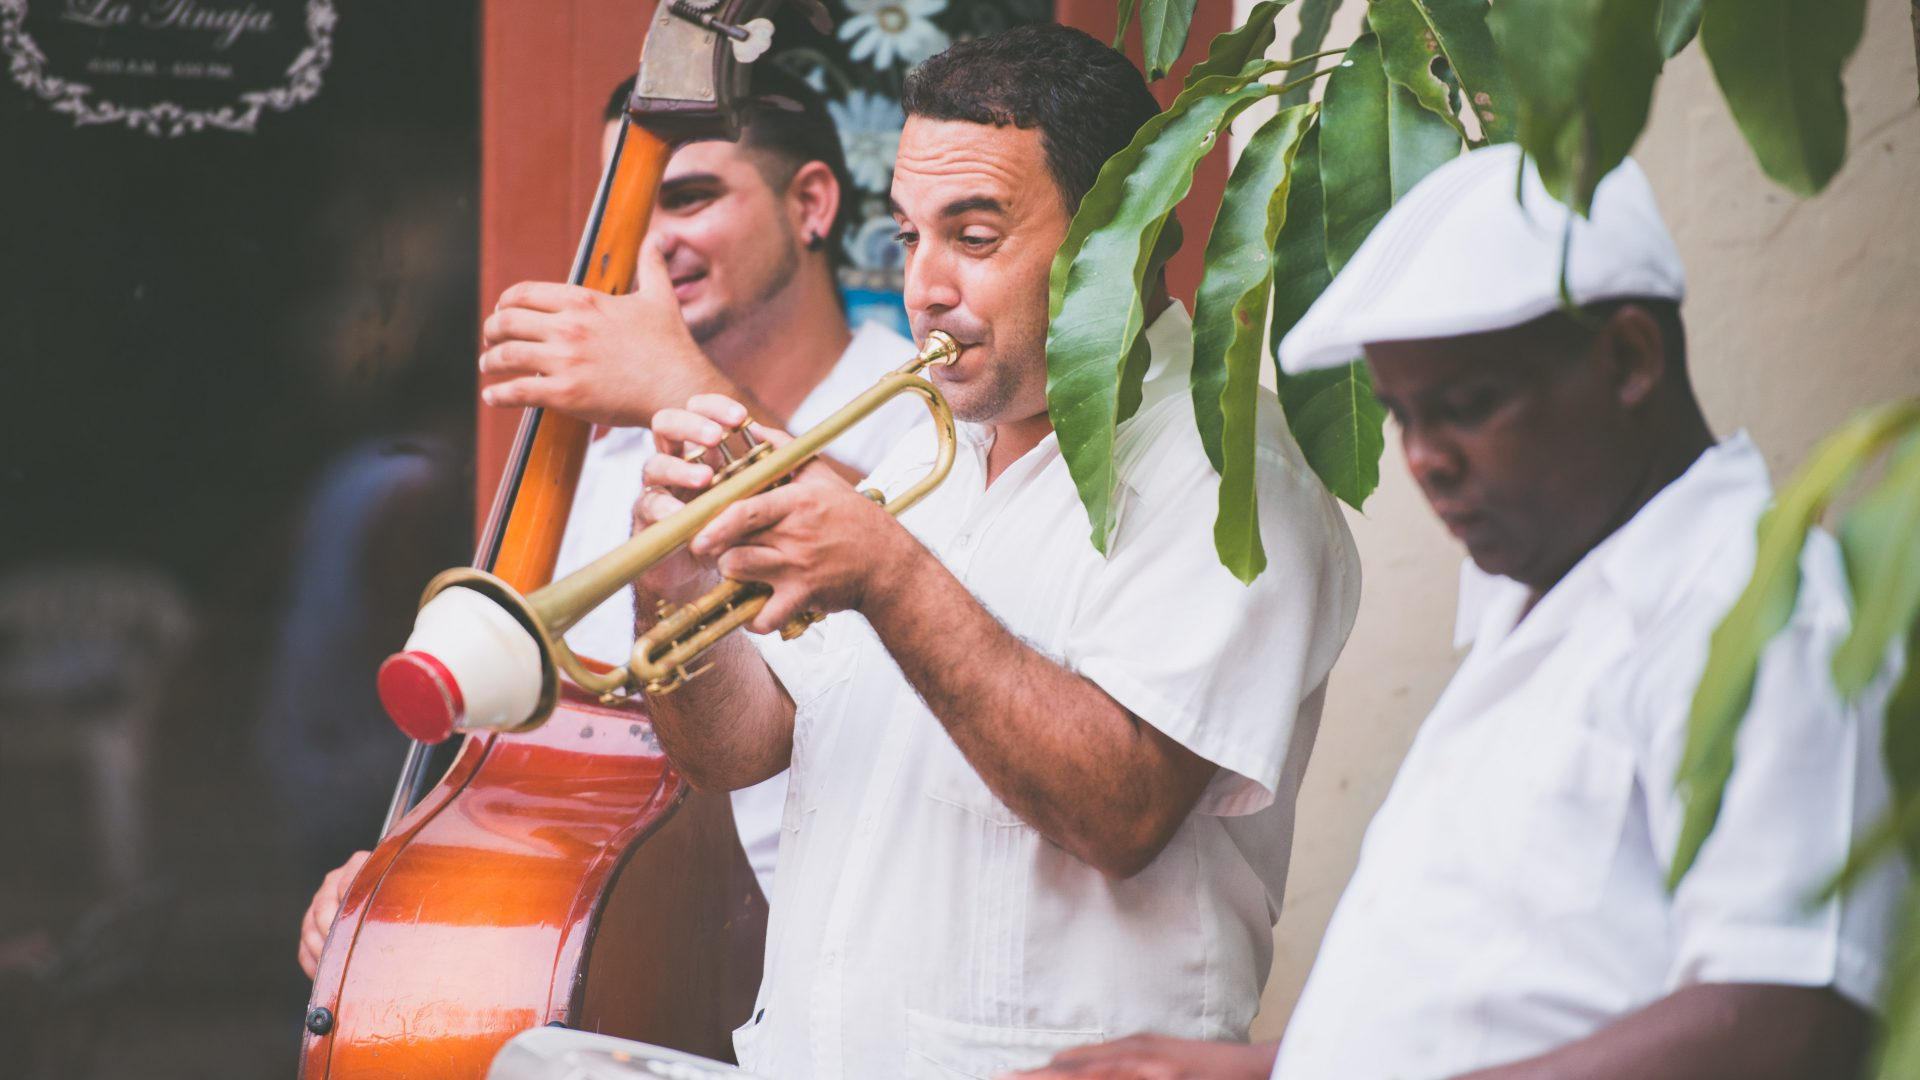 Musicians perform in Old Havana, Cuba.